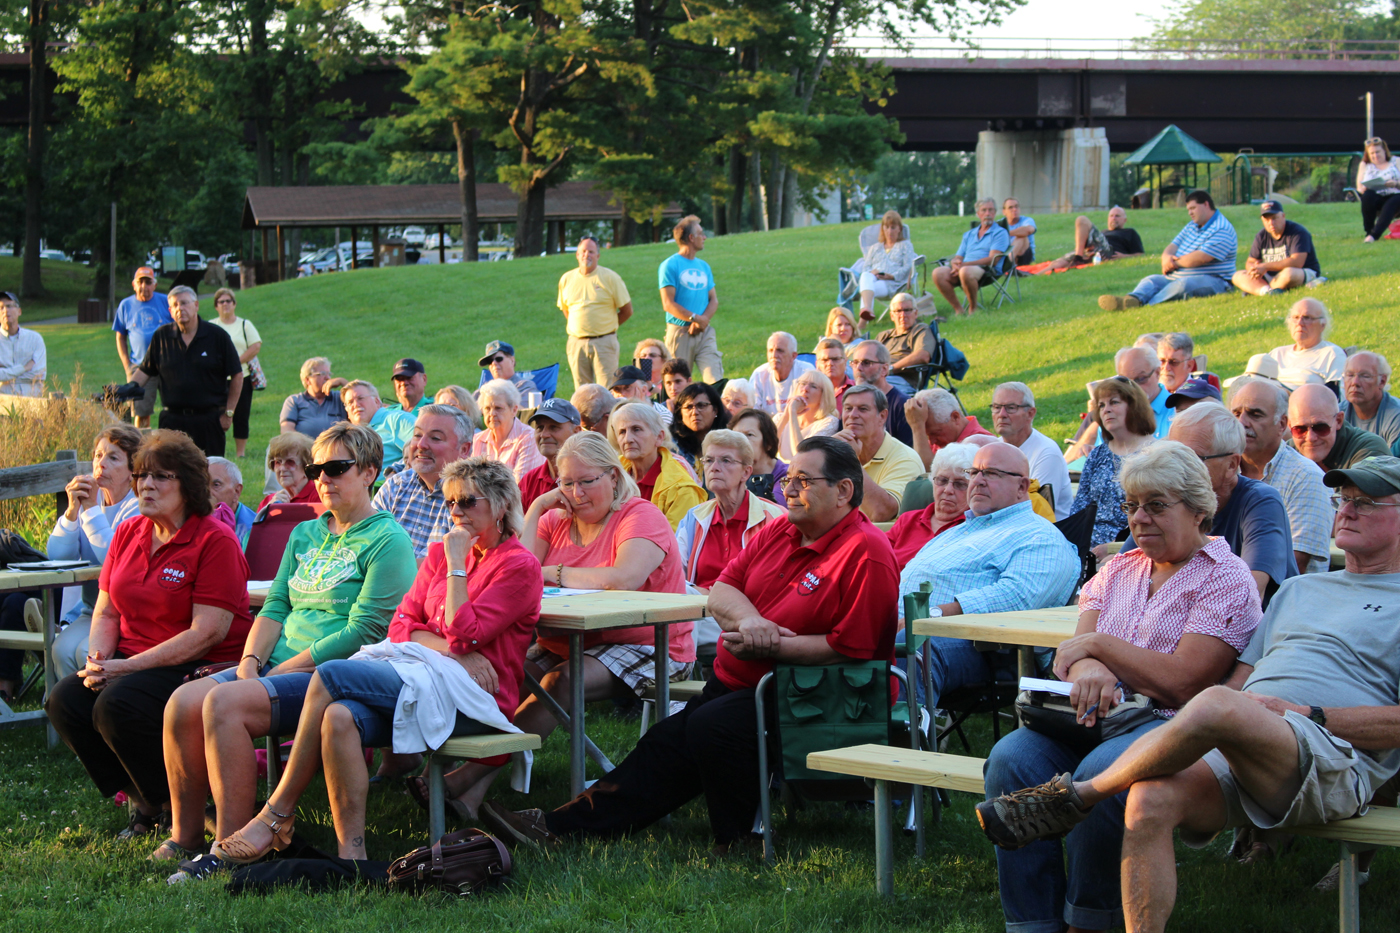 Over 200 attendees showed up for the meeting. Photo by Stephen Herbeck